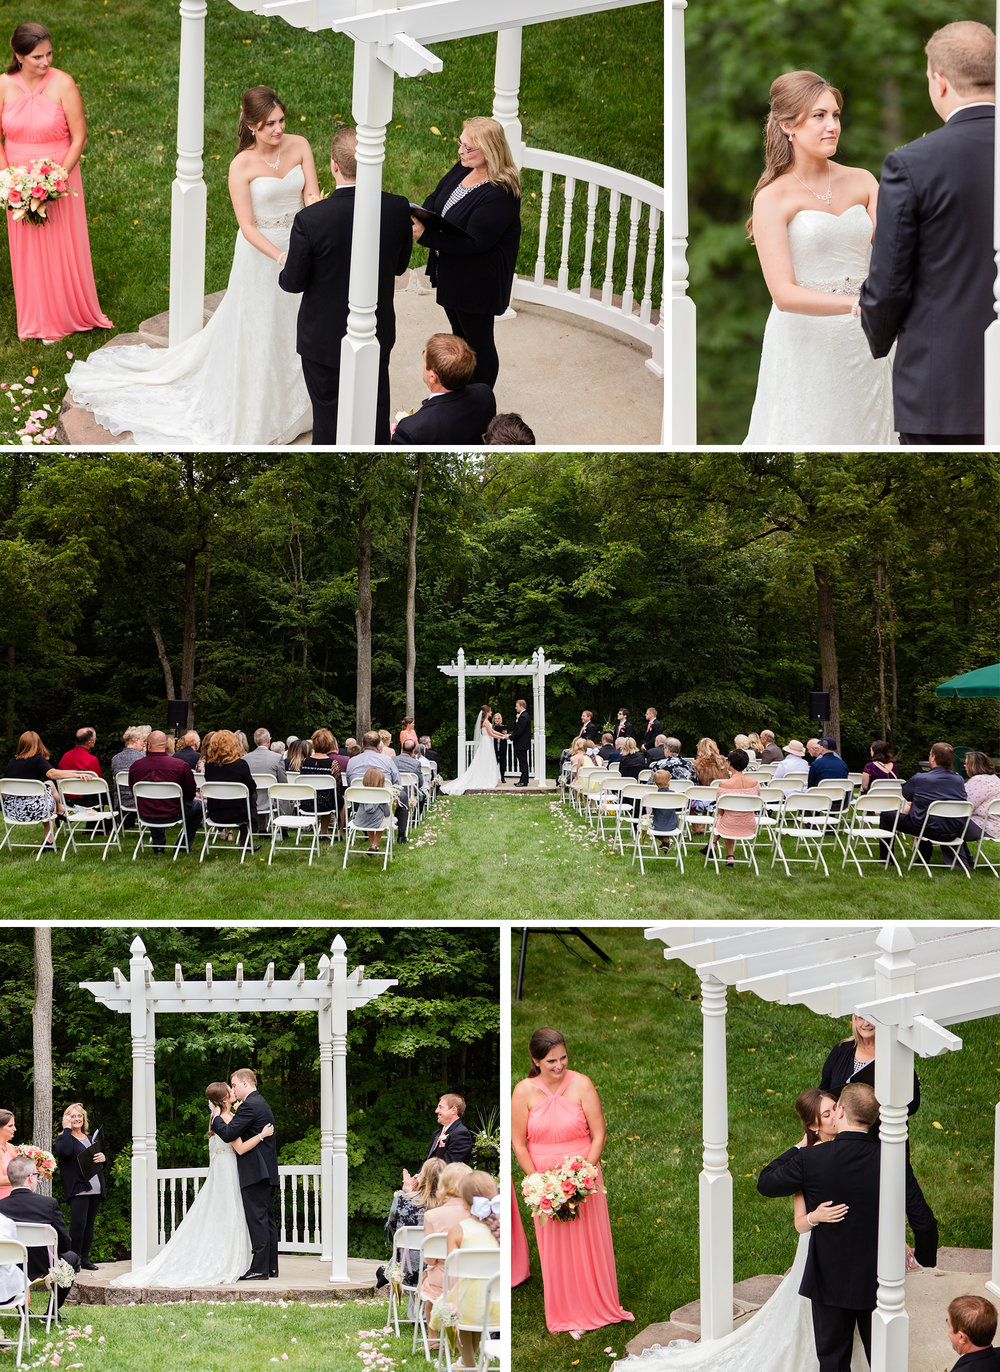 Hart_wedding_blogCollage-5.jpg